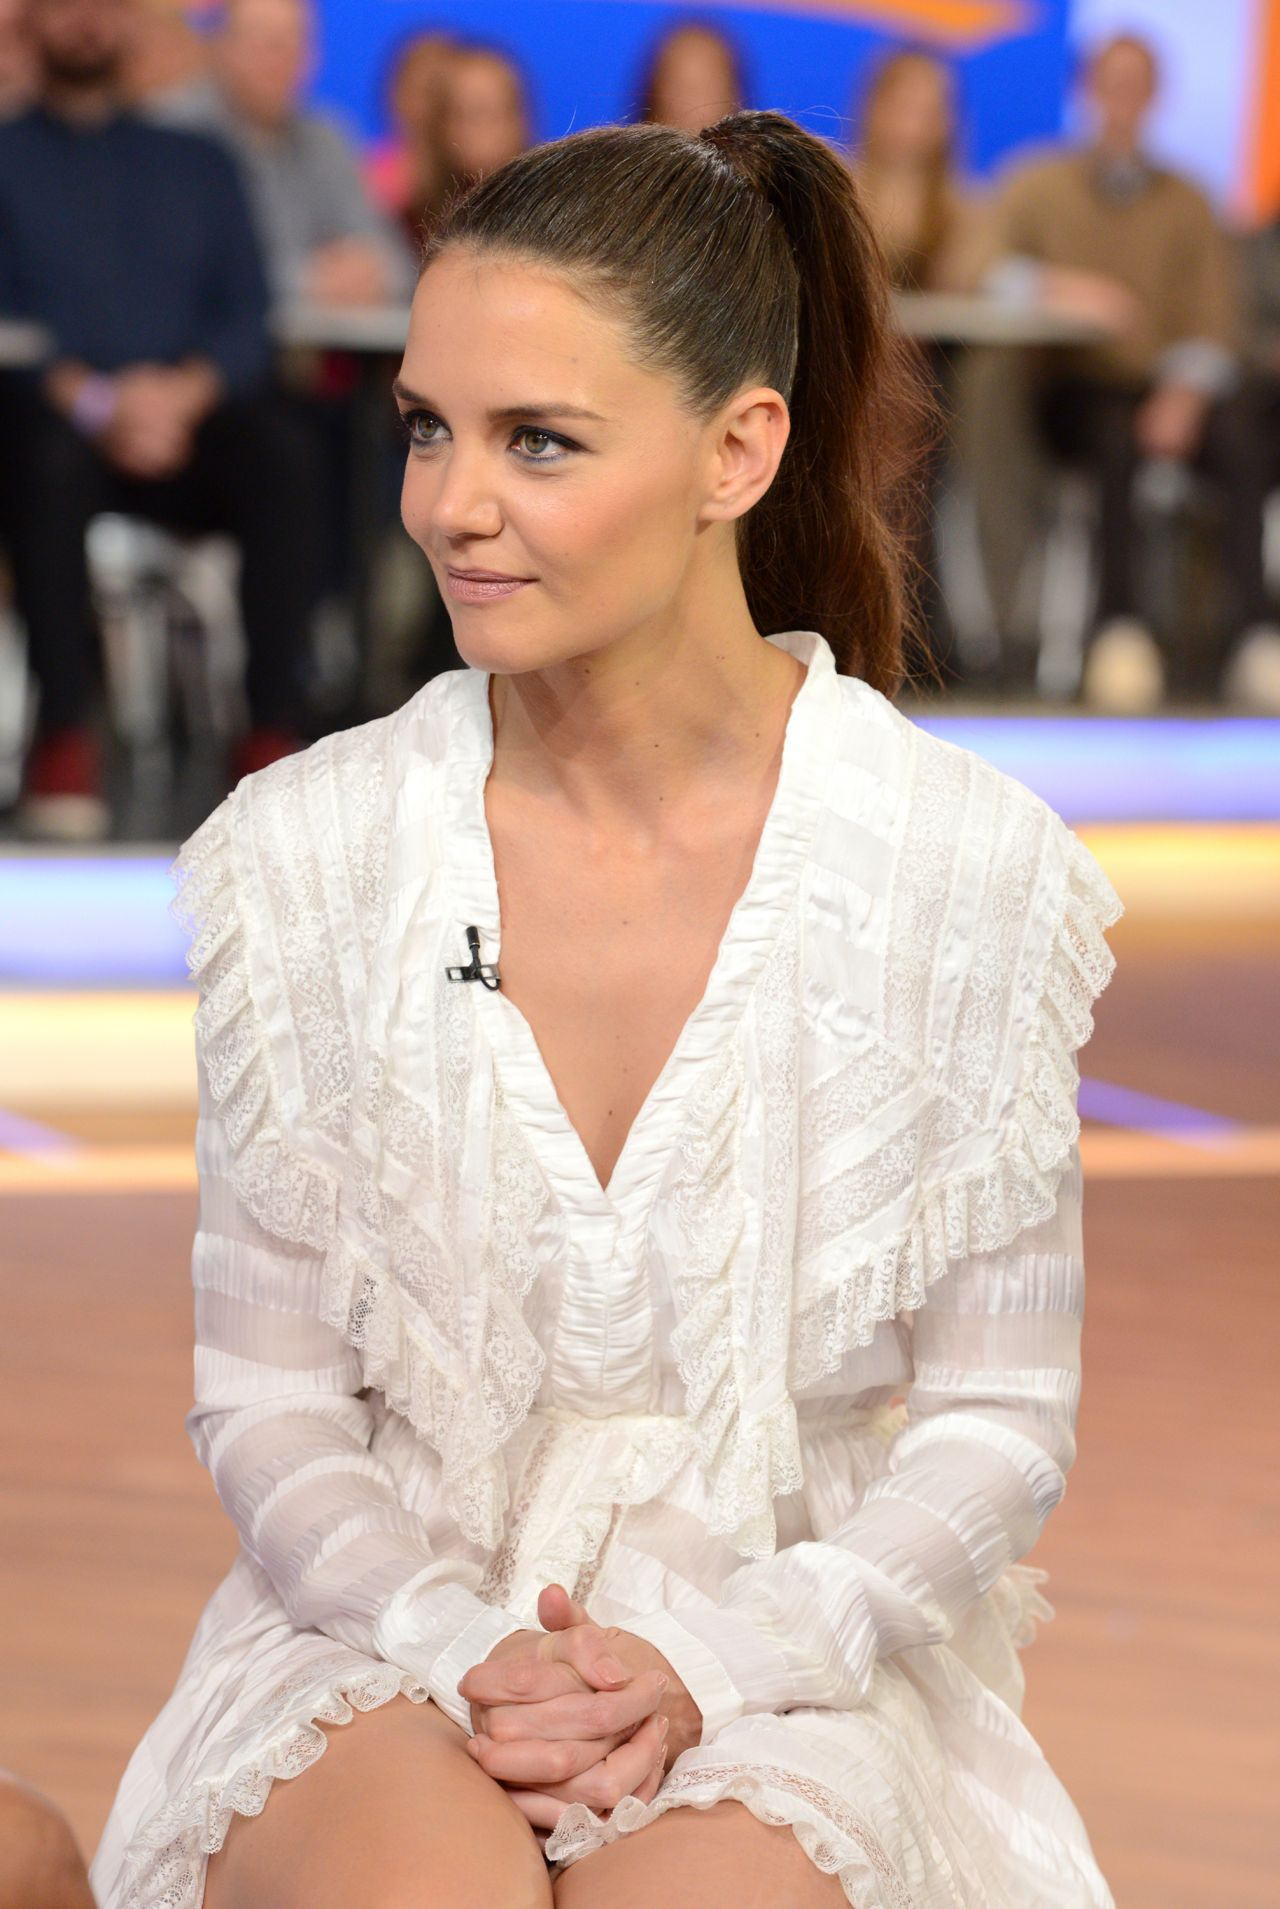 Katie Holmes - Good Morning America in NYC 3/29/2017 Katie Holmes Pregnant